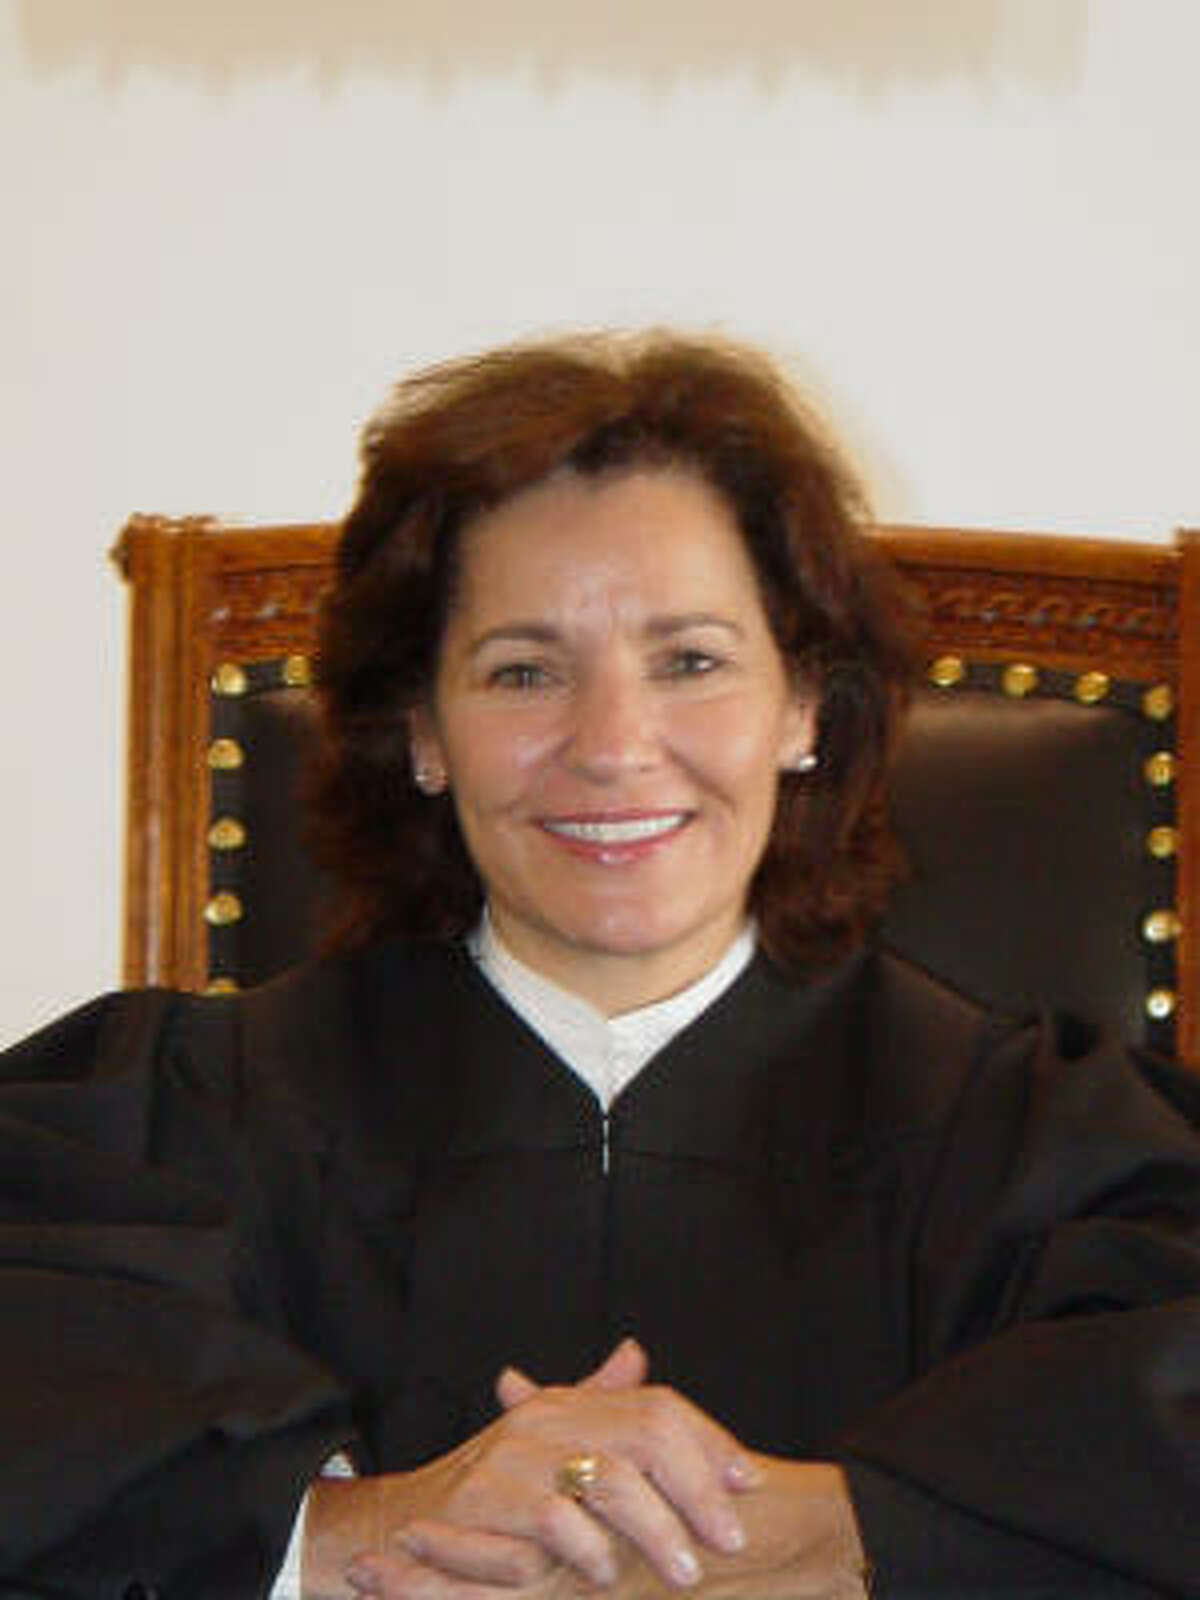 Sharon Keller, presiding judge of the Texas Court of Criminal Appeals, is under fire for refusing to accept an 11th-hour appeal from an inmate about to be executed.